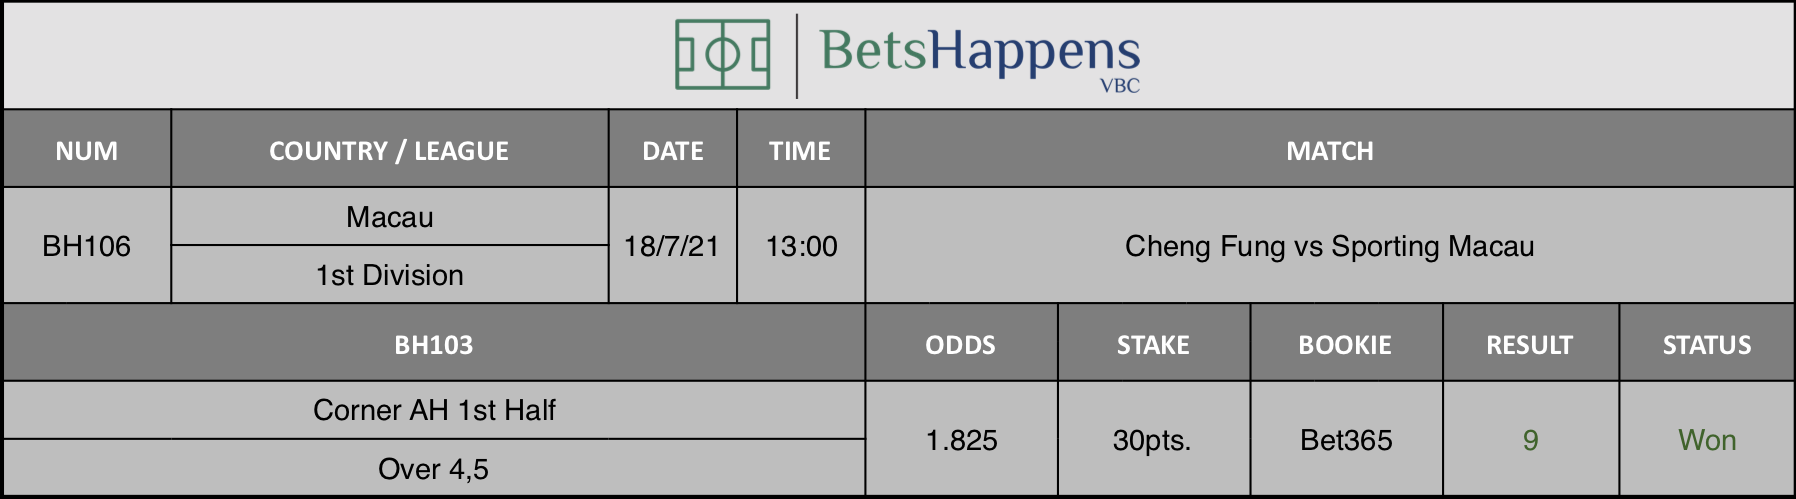 Results of our advice for the Cheng Fung vs Sporting Macau match in which Corner AH 1st Half Over 4,5 is recommended.